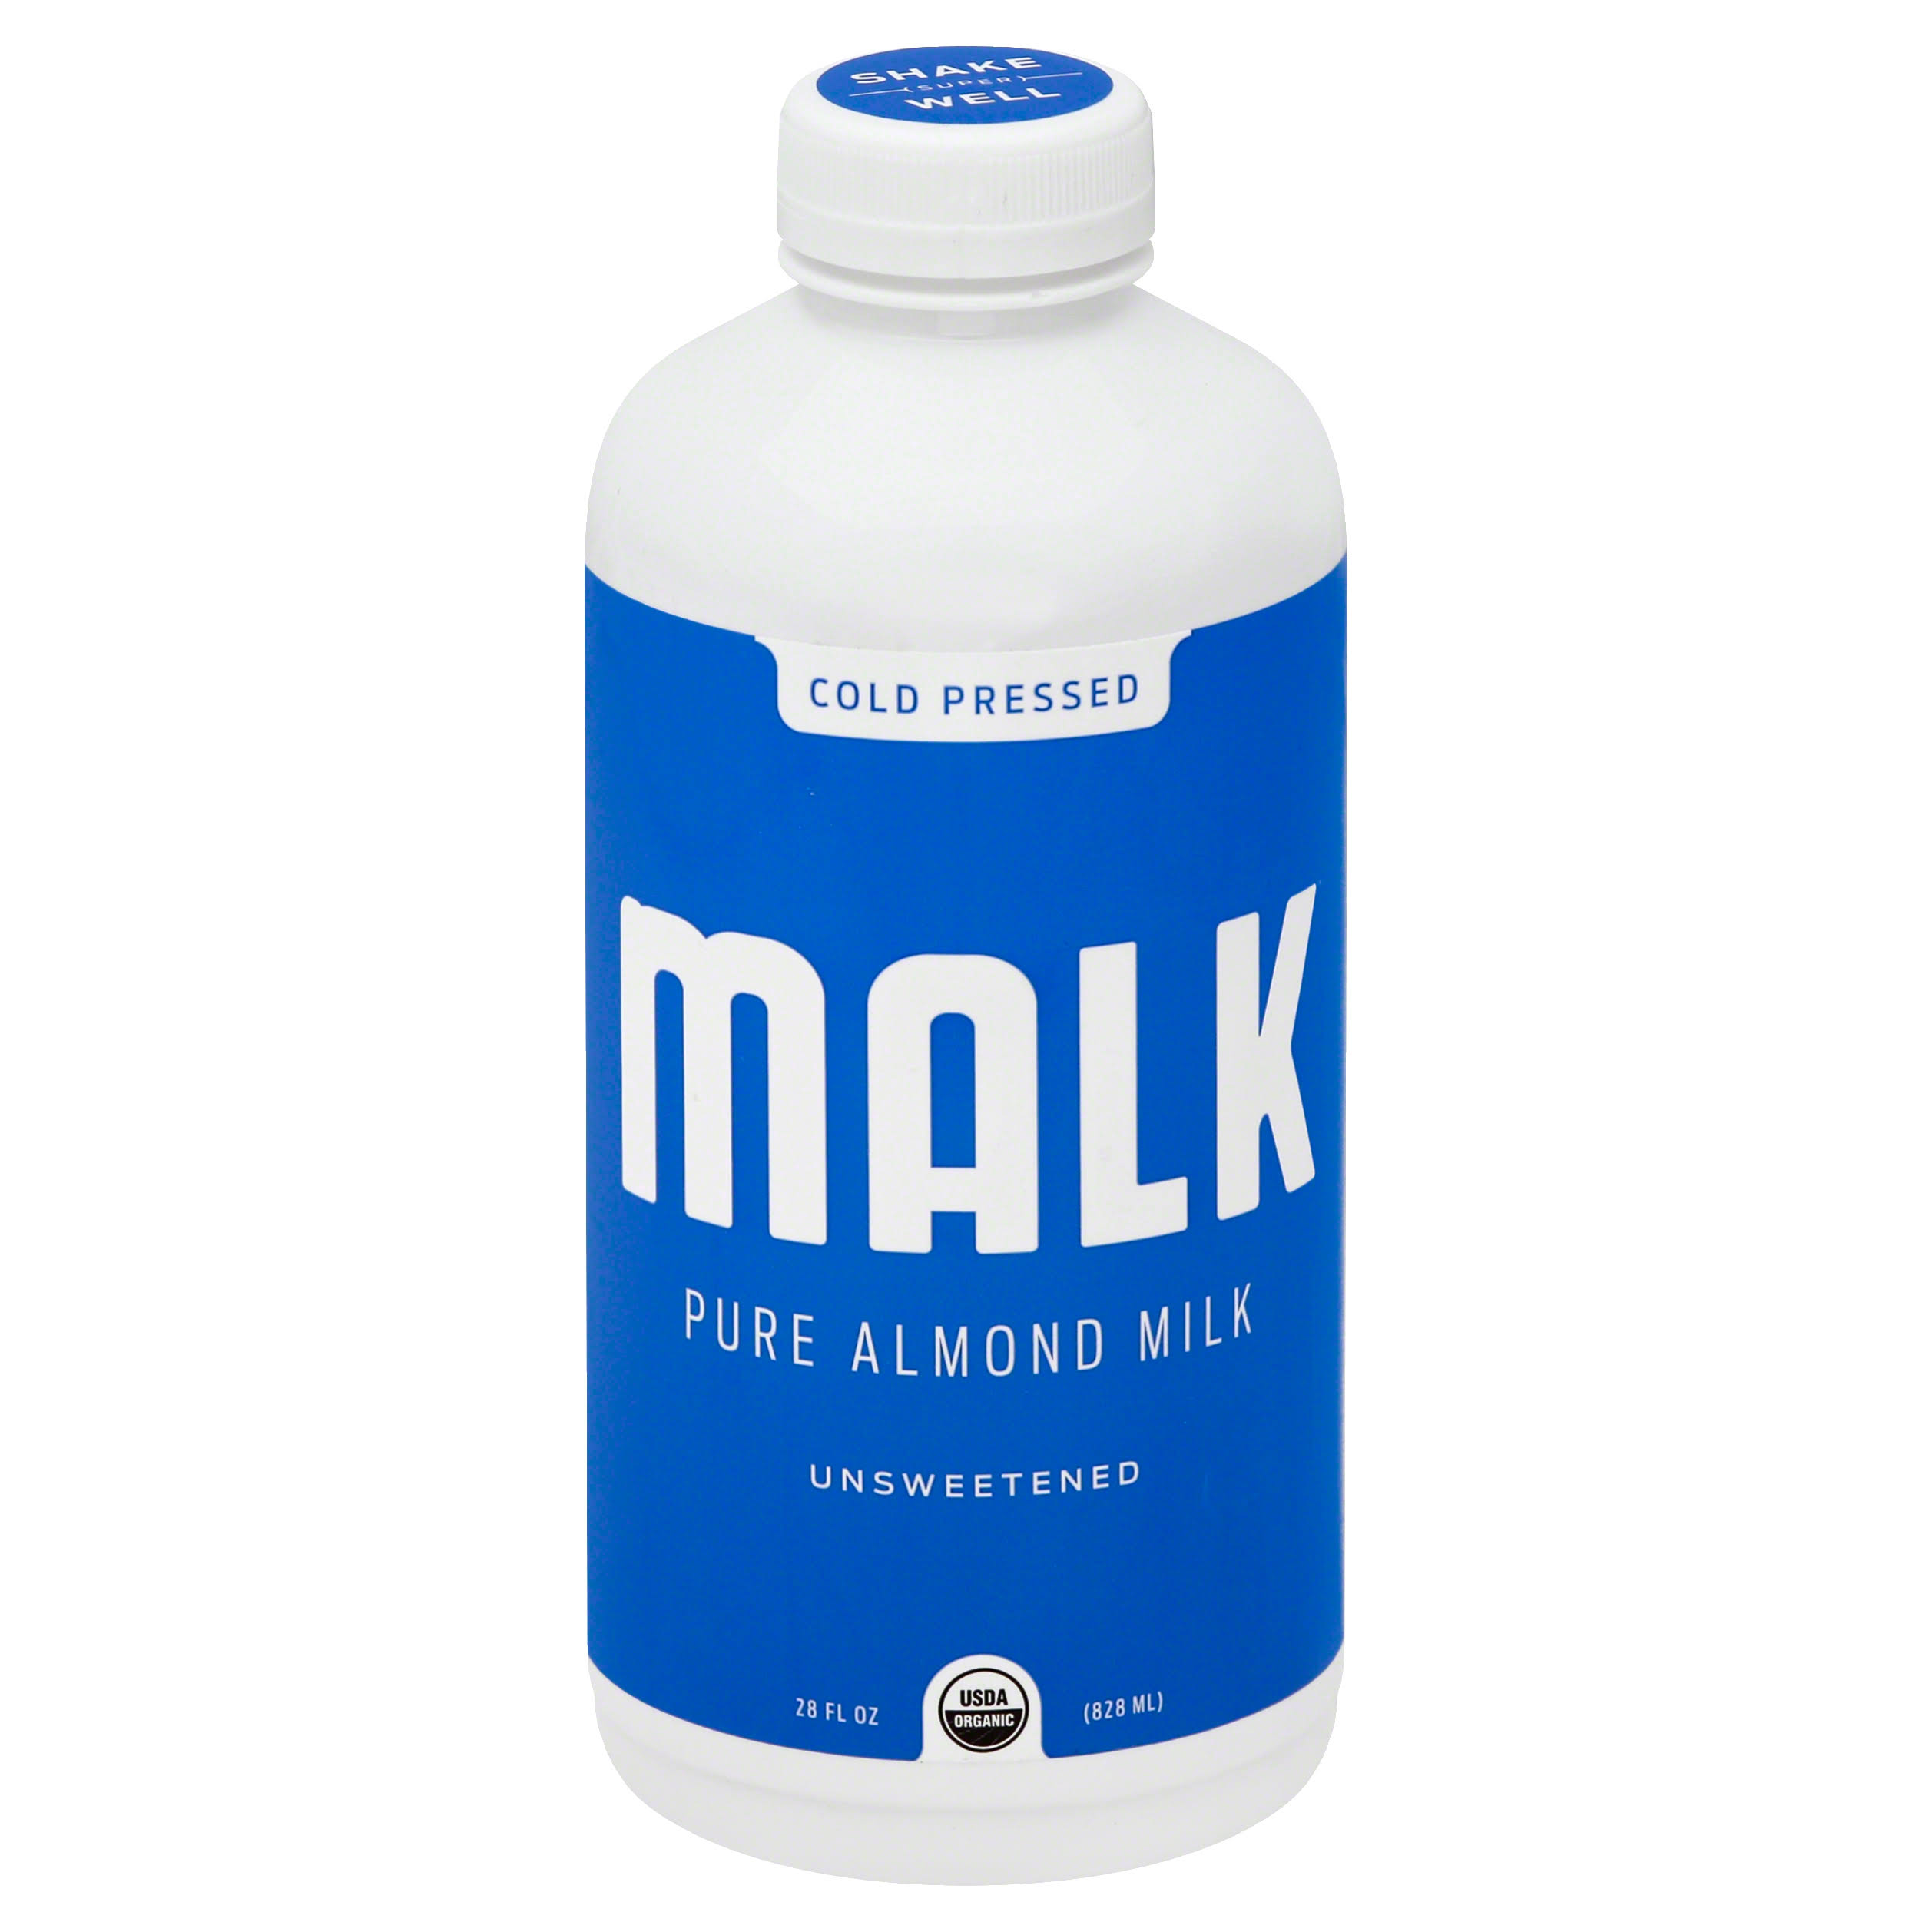 Malk Milk, Pure Almond, Unsweetened - 28 fl oz